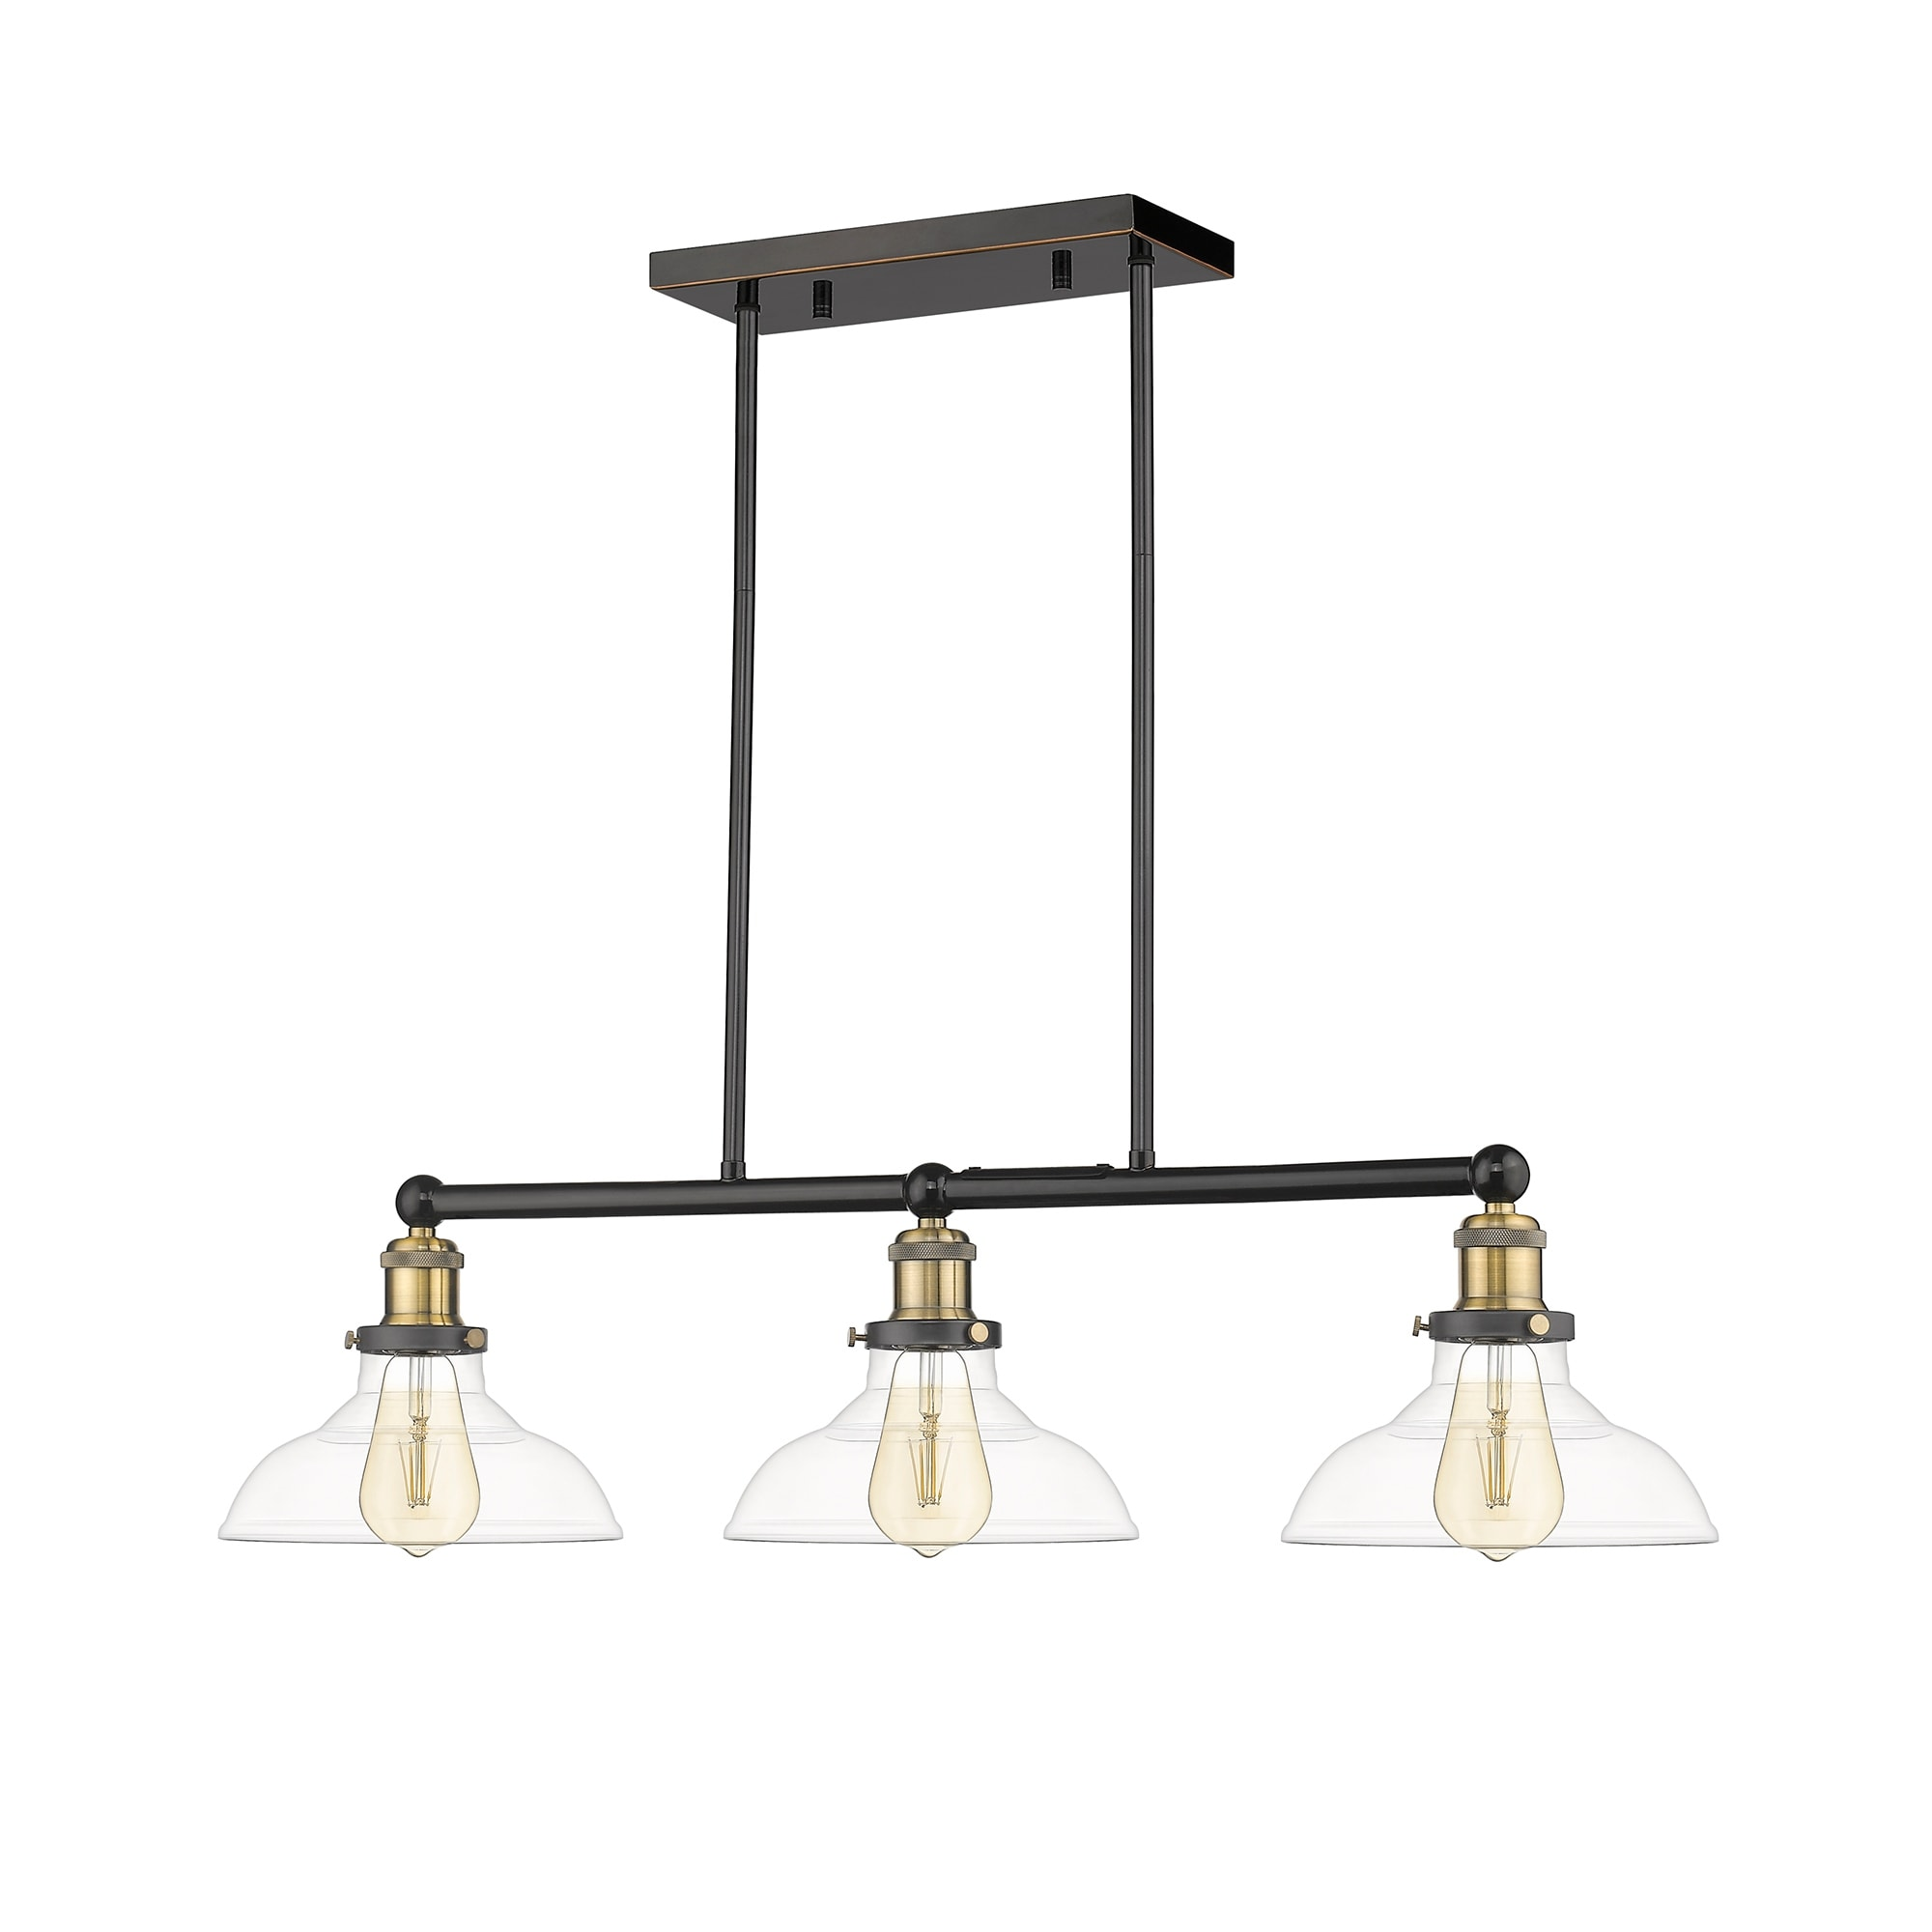 Shop Ove Decors Elgin Iii 3 Light Adjustable Kitchen Island Linear Led Pendant In Black And Brass Accents 8 25 H In Overstock 30925640